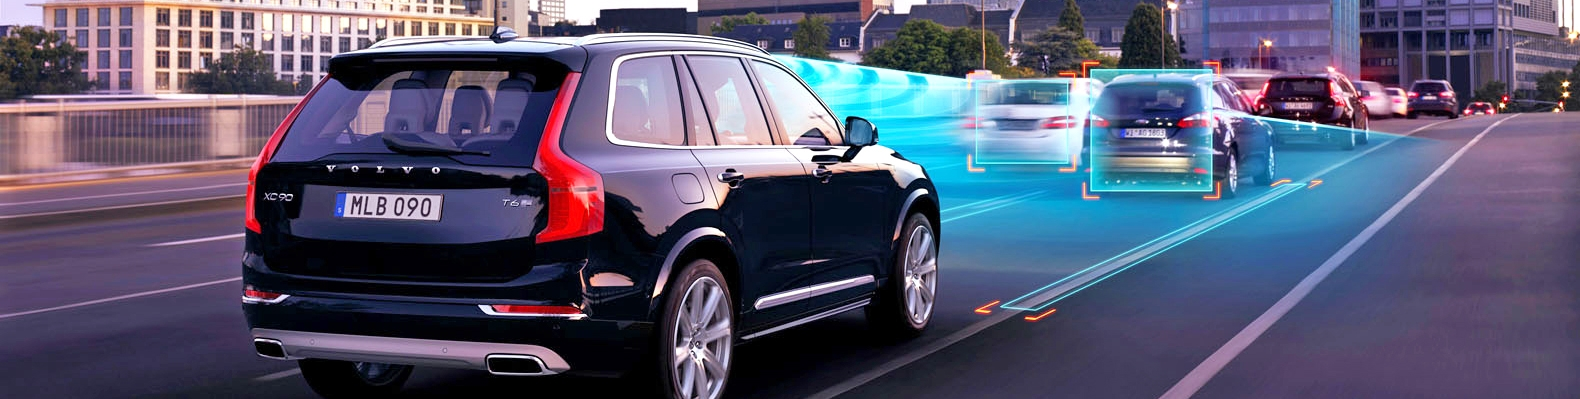 New volvo to deathproof its cars 2020 Volvo 2020 Safety Goal Wallpaper